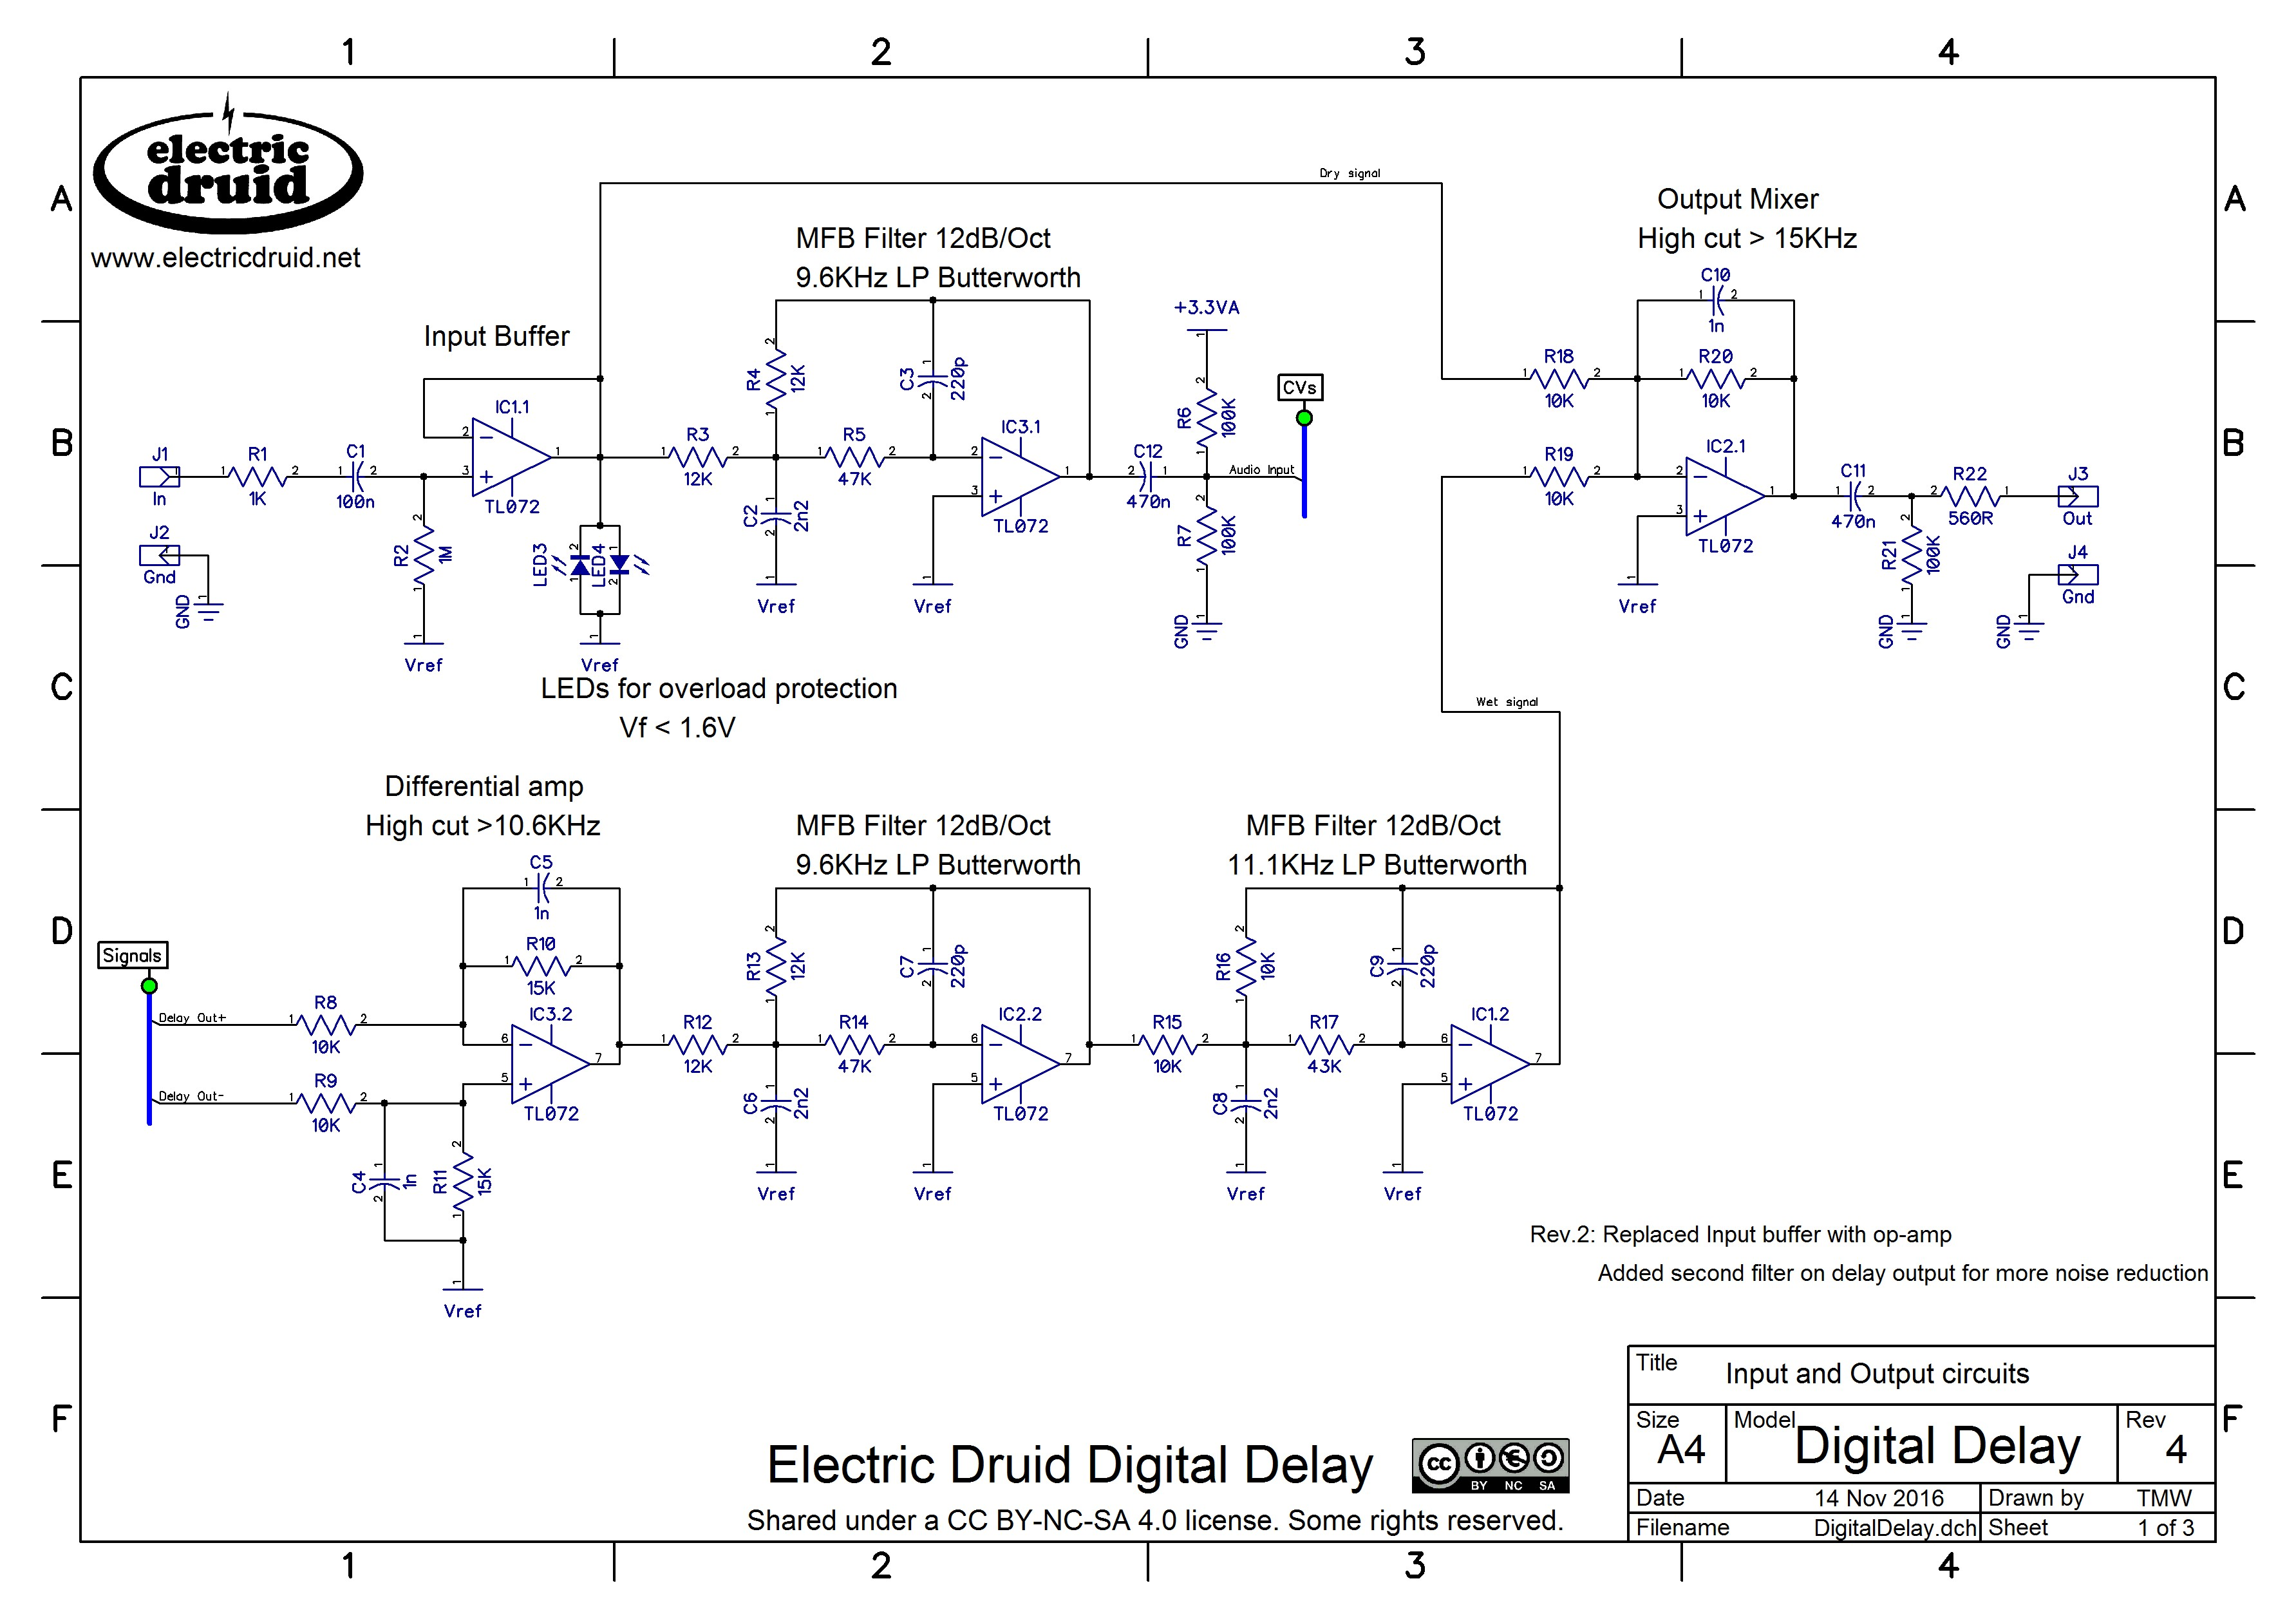 Pleasant Diy 4 Second Digital Delay Electric Druid Wiring Cloud Rdonaheevemohammedshrineorg